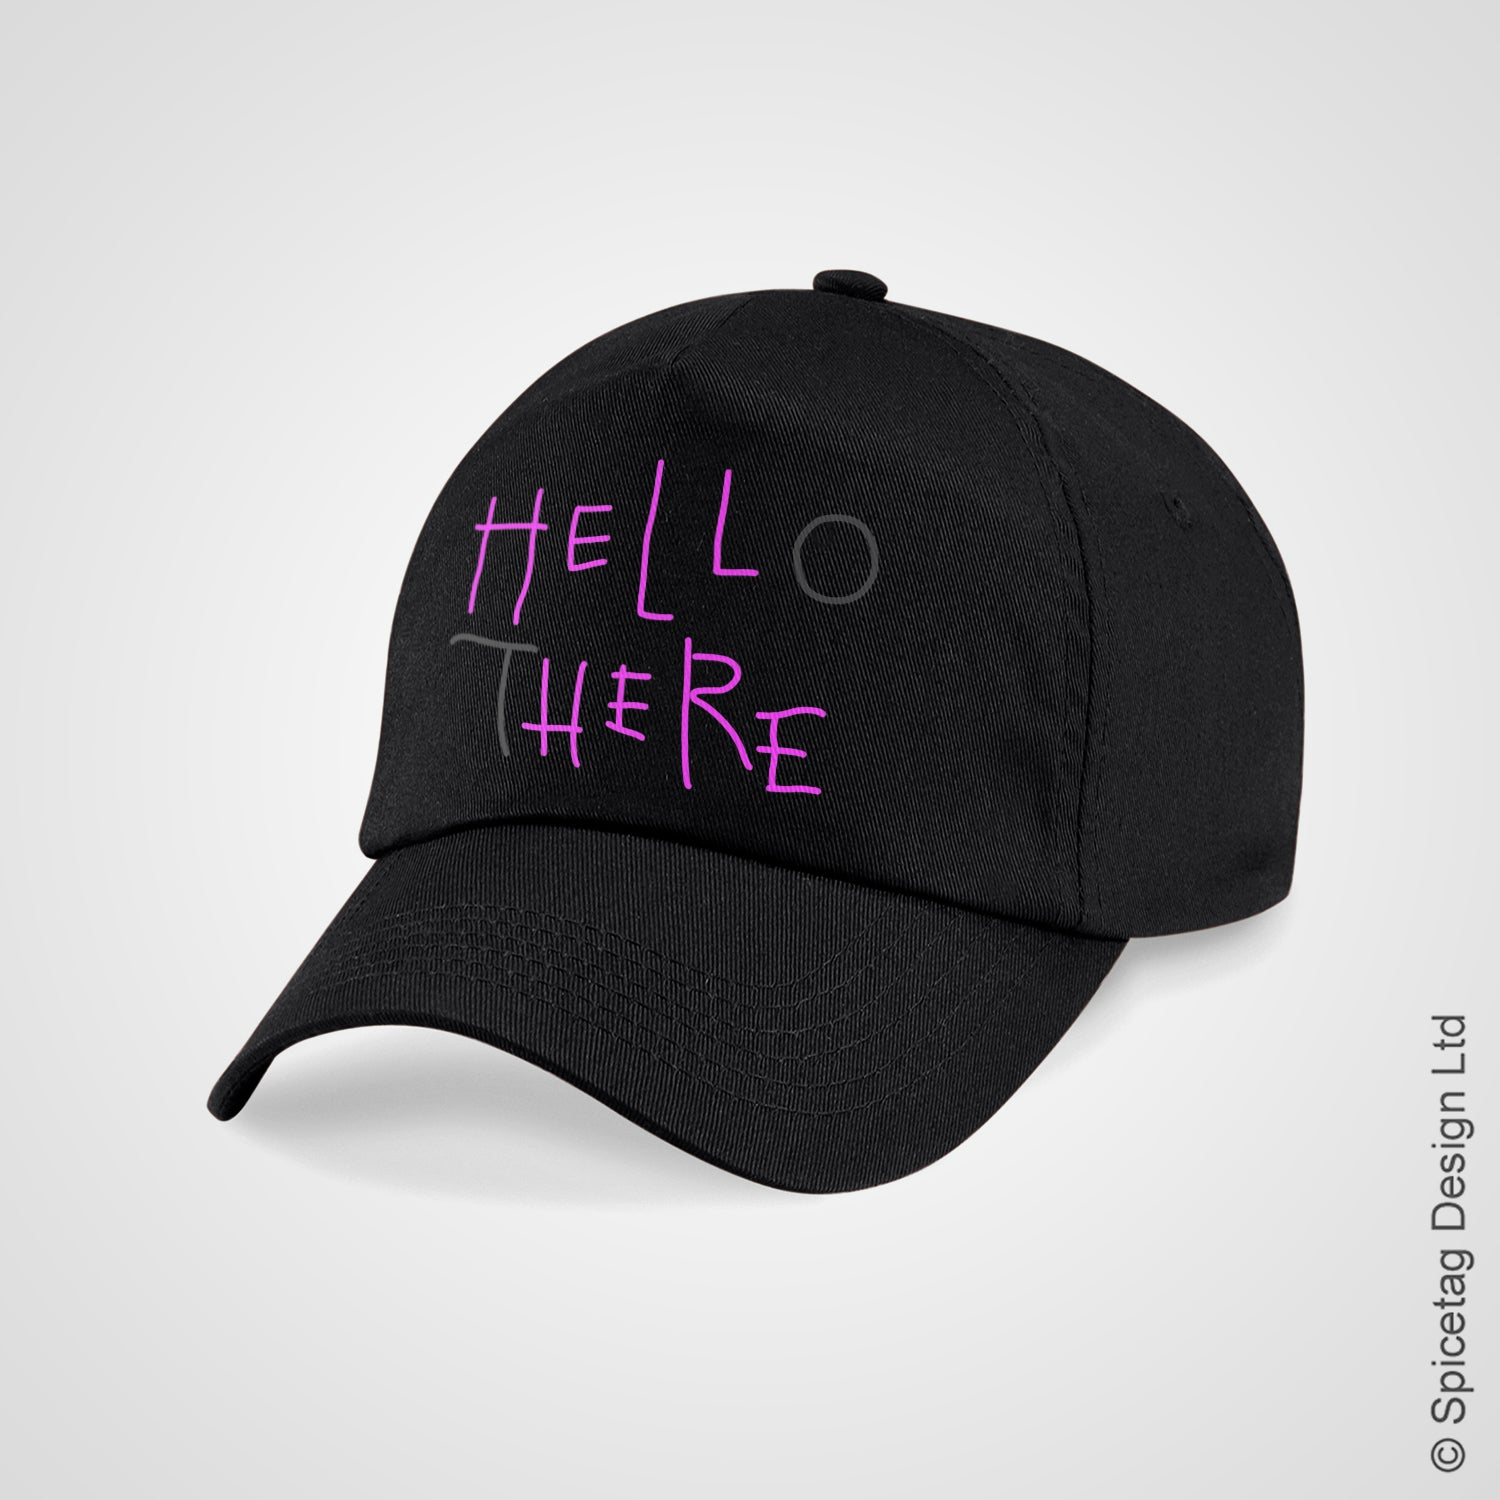 Hell Here Cap